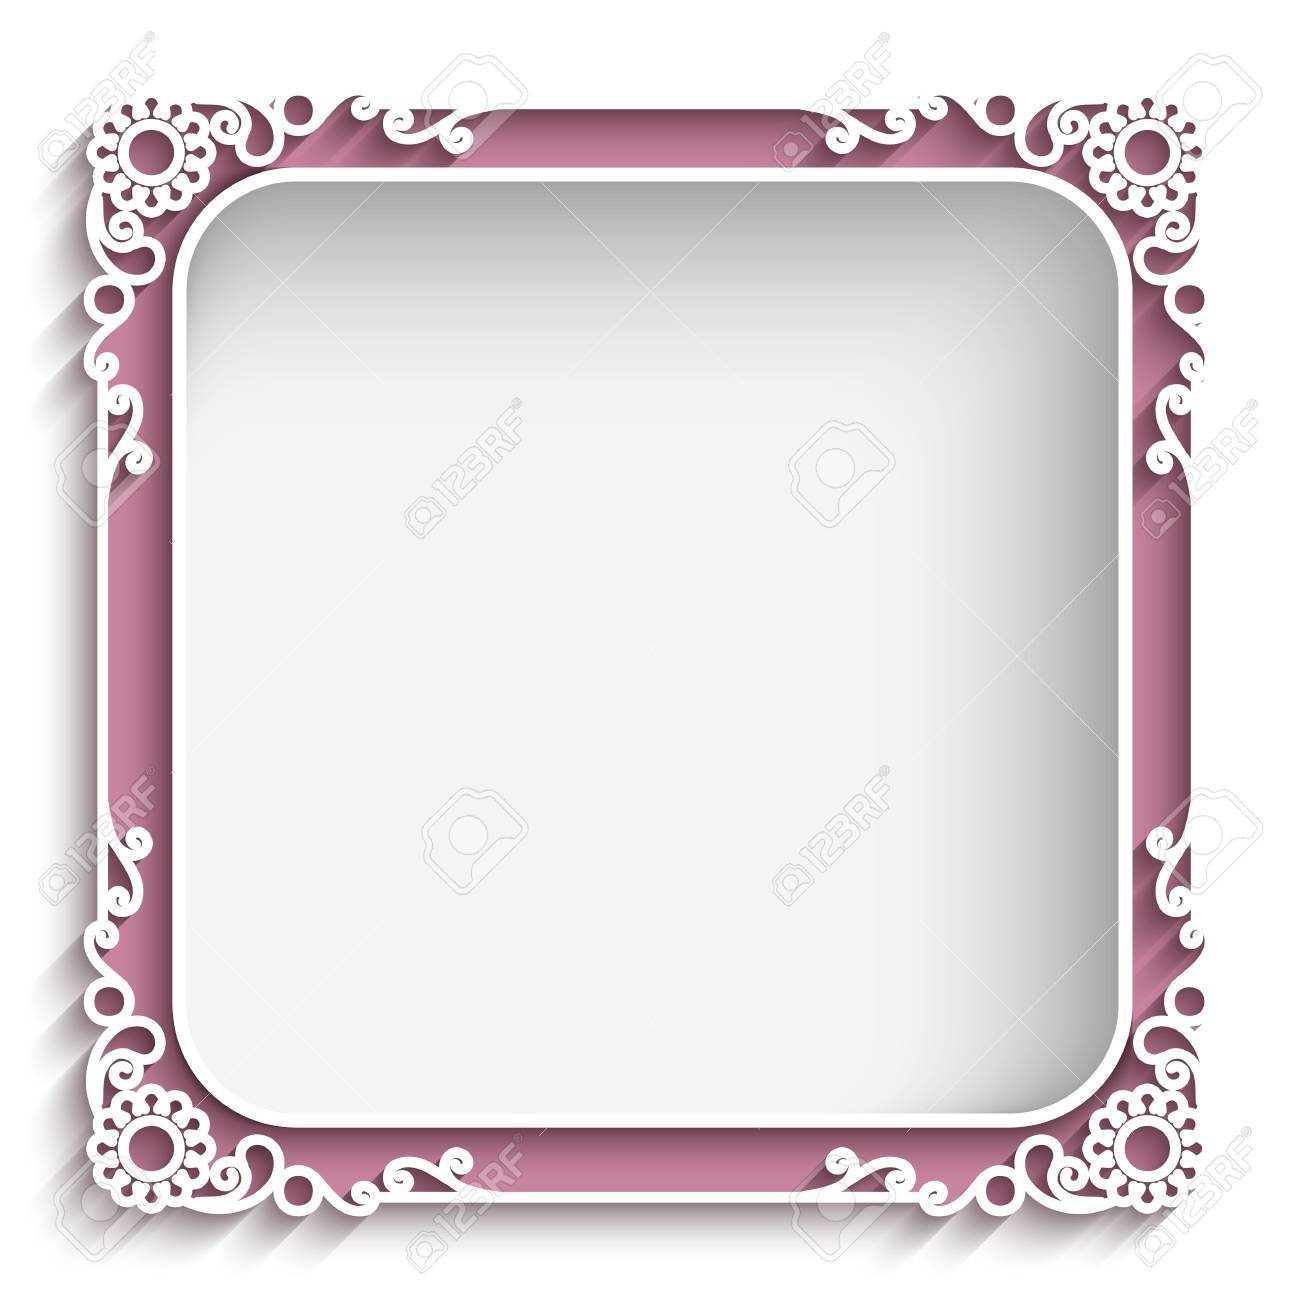 Abstract square lace frame with paper swirls, ornamental background - 42847593